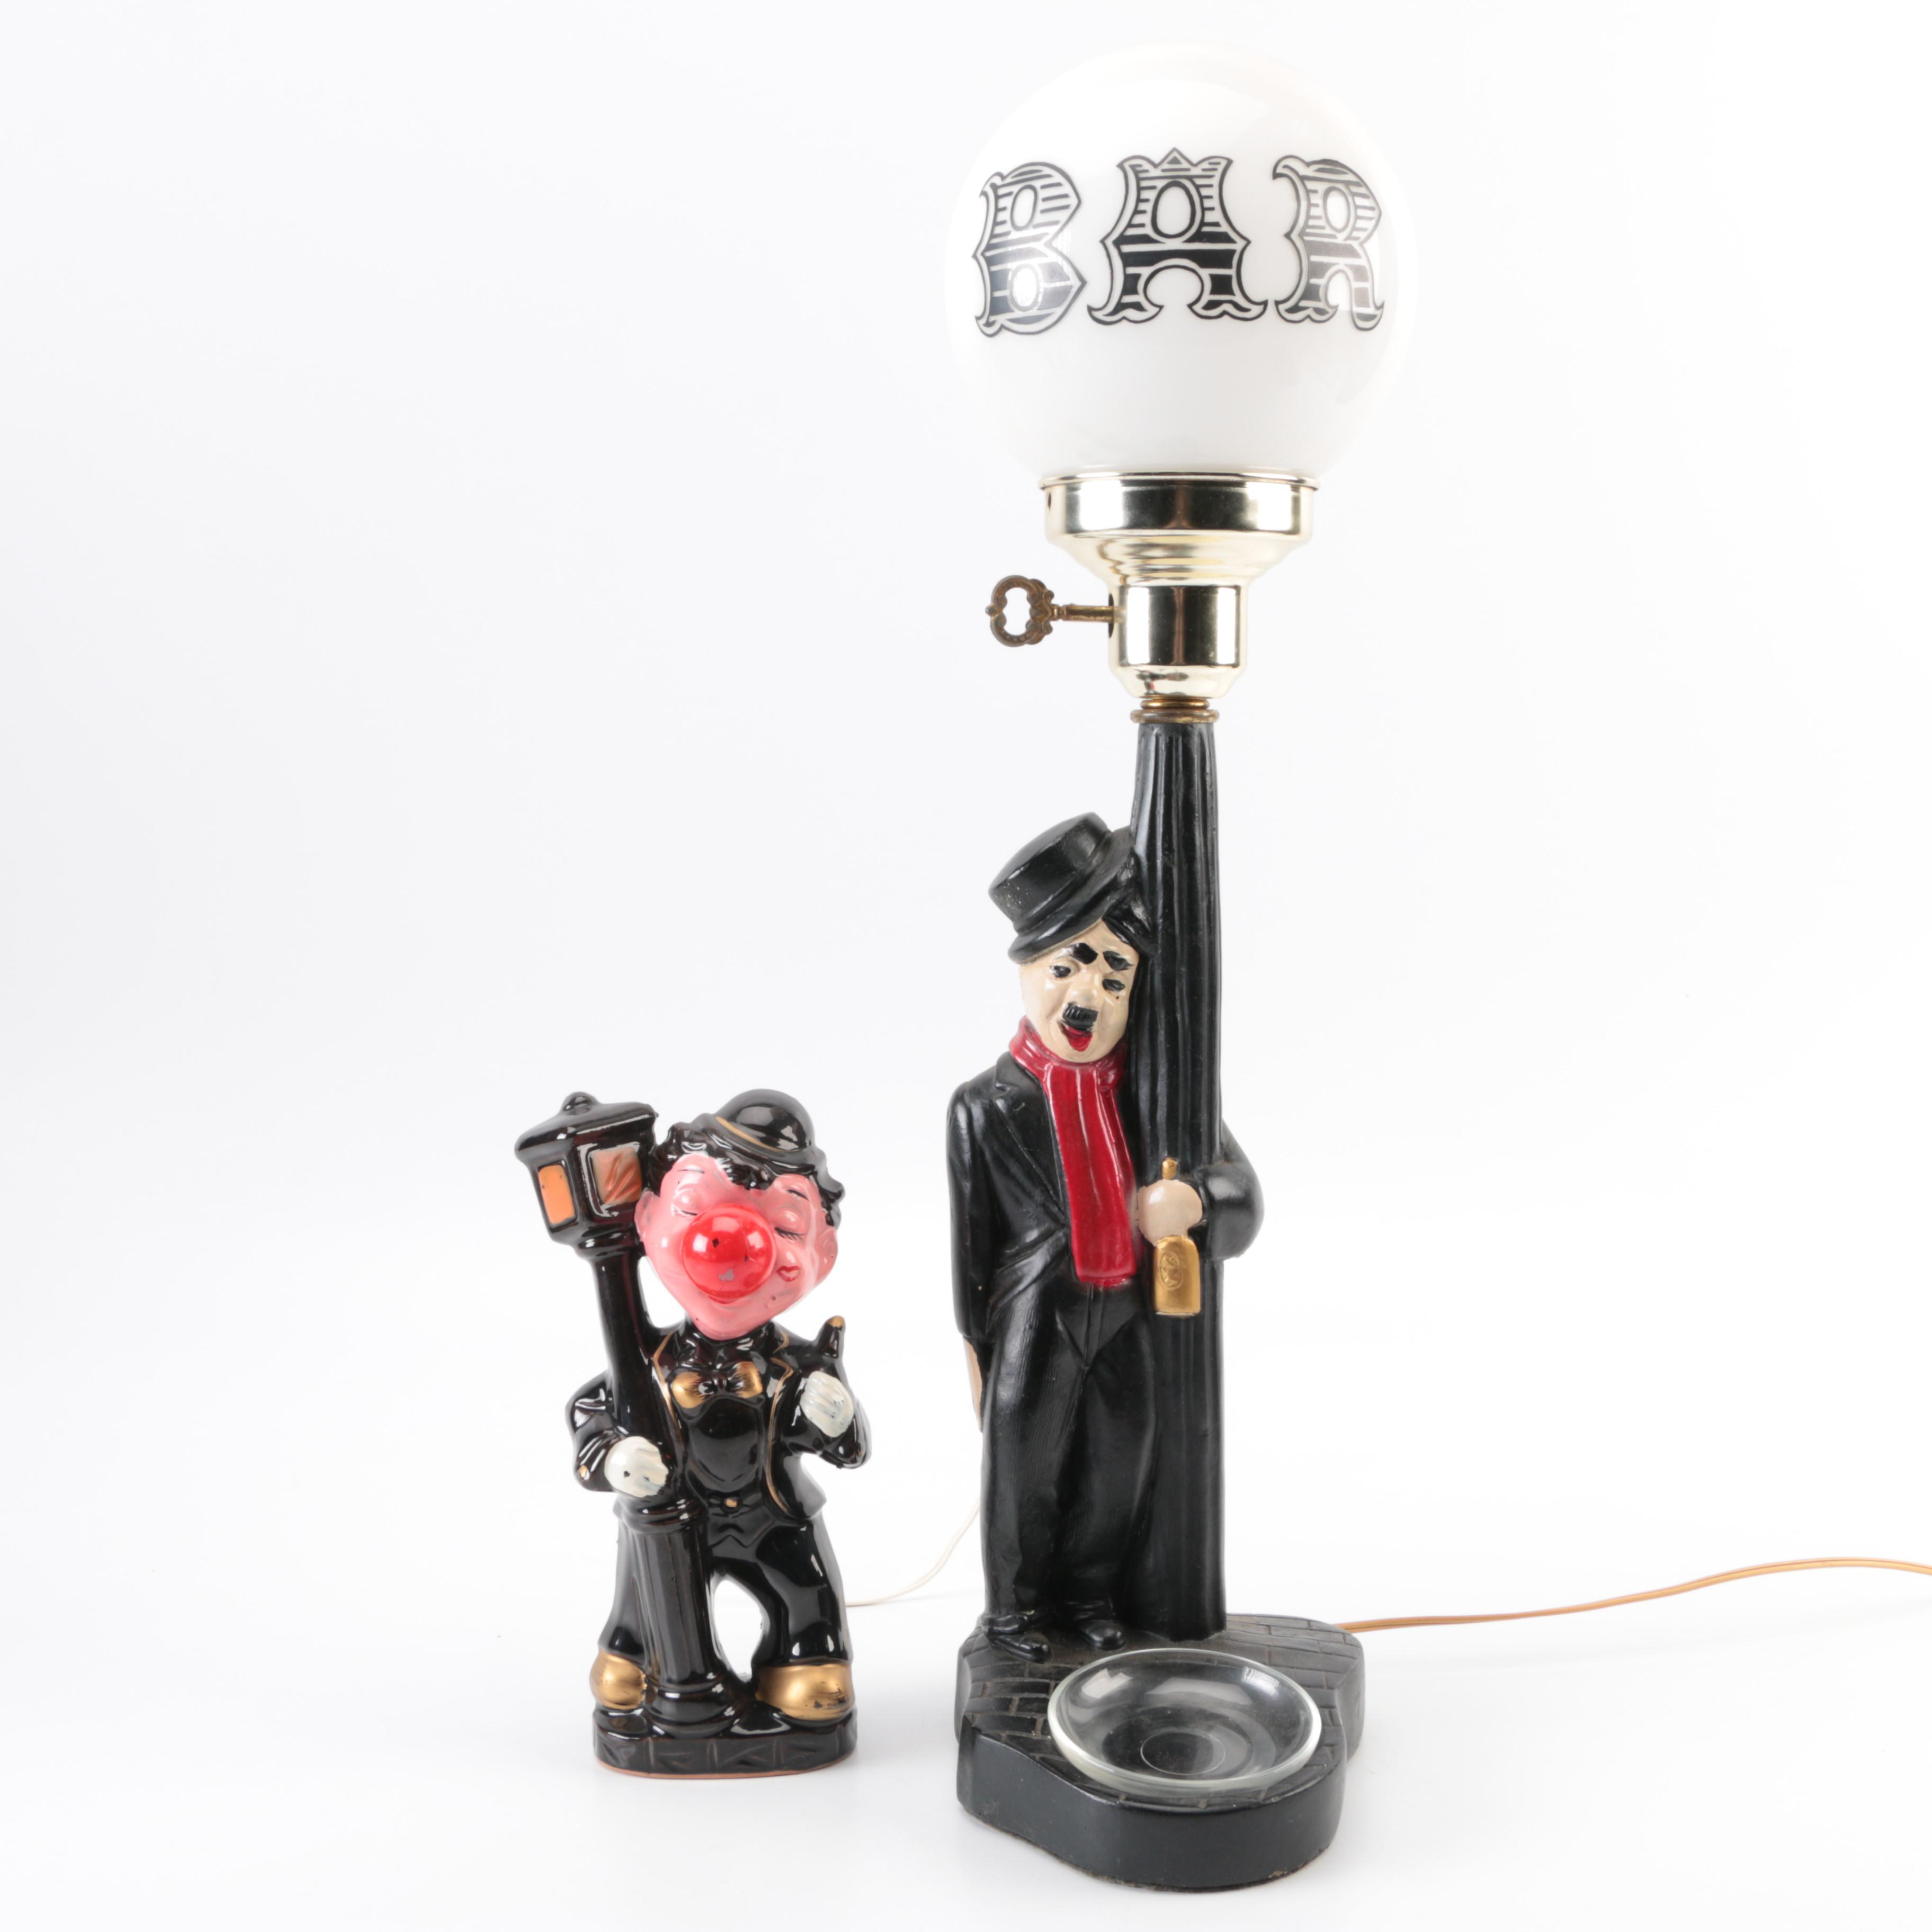 Charlie Chaplin Bar Lamp and Clown Lamp : EBTH